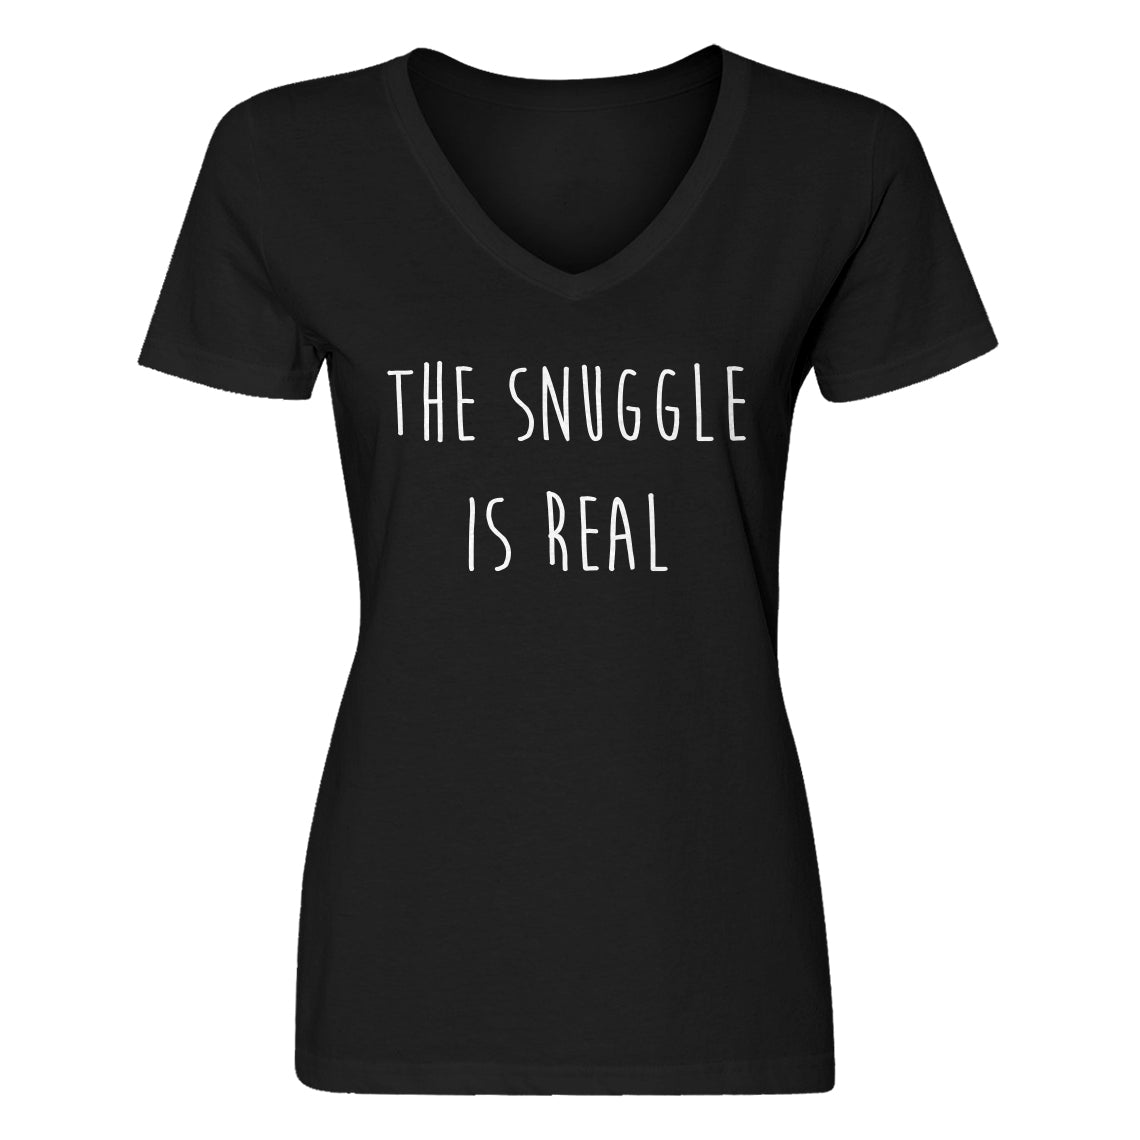 Womens The Snuggle is Real V-Neck T-shirt